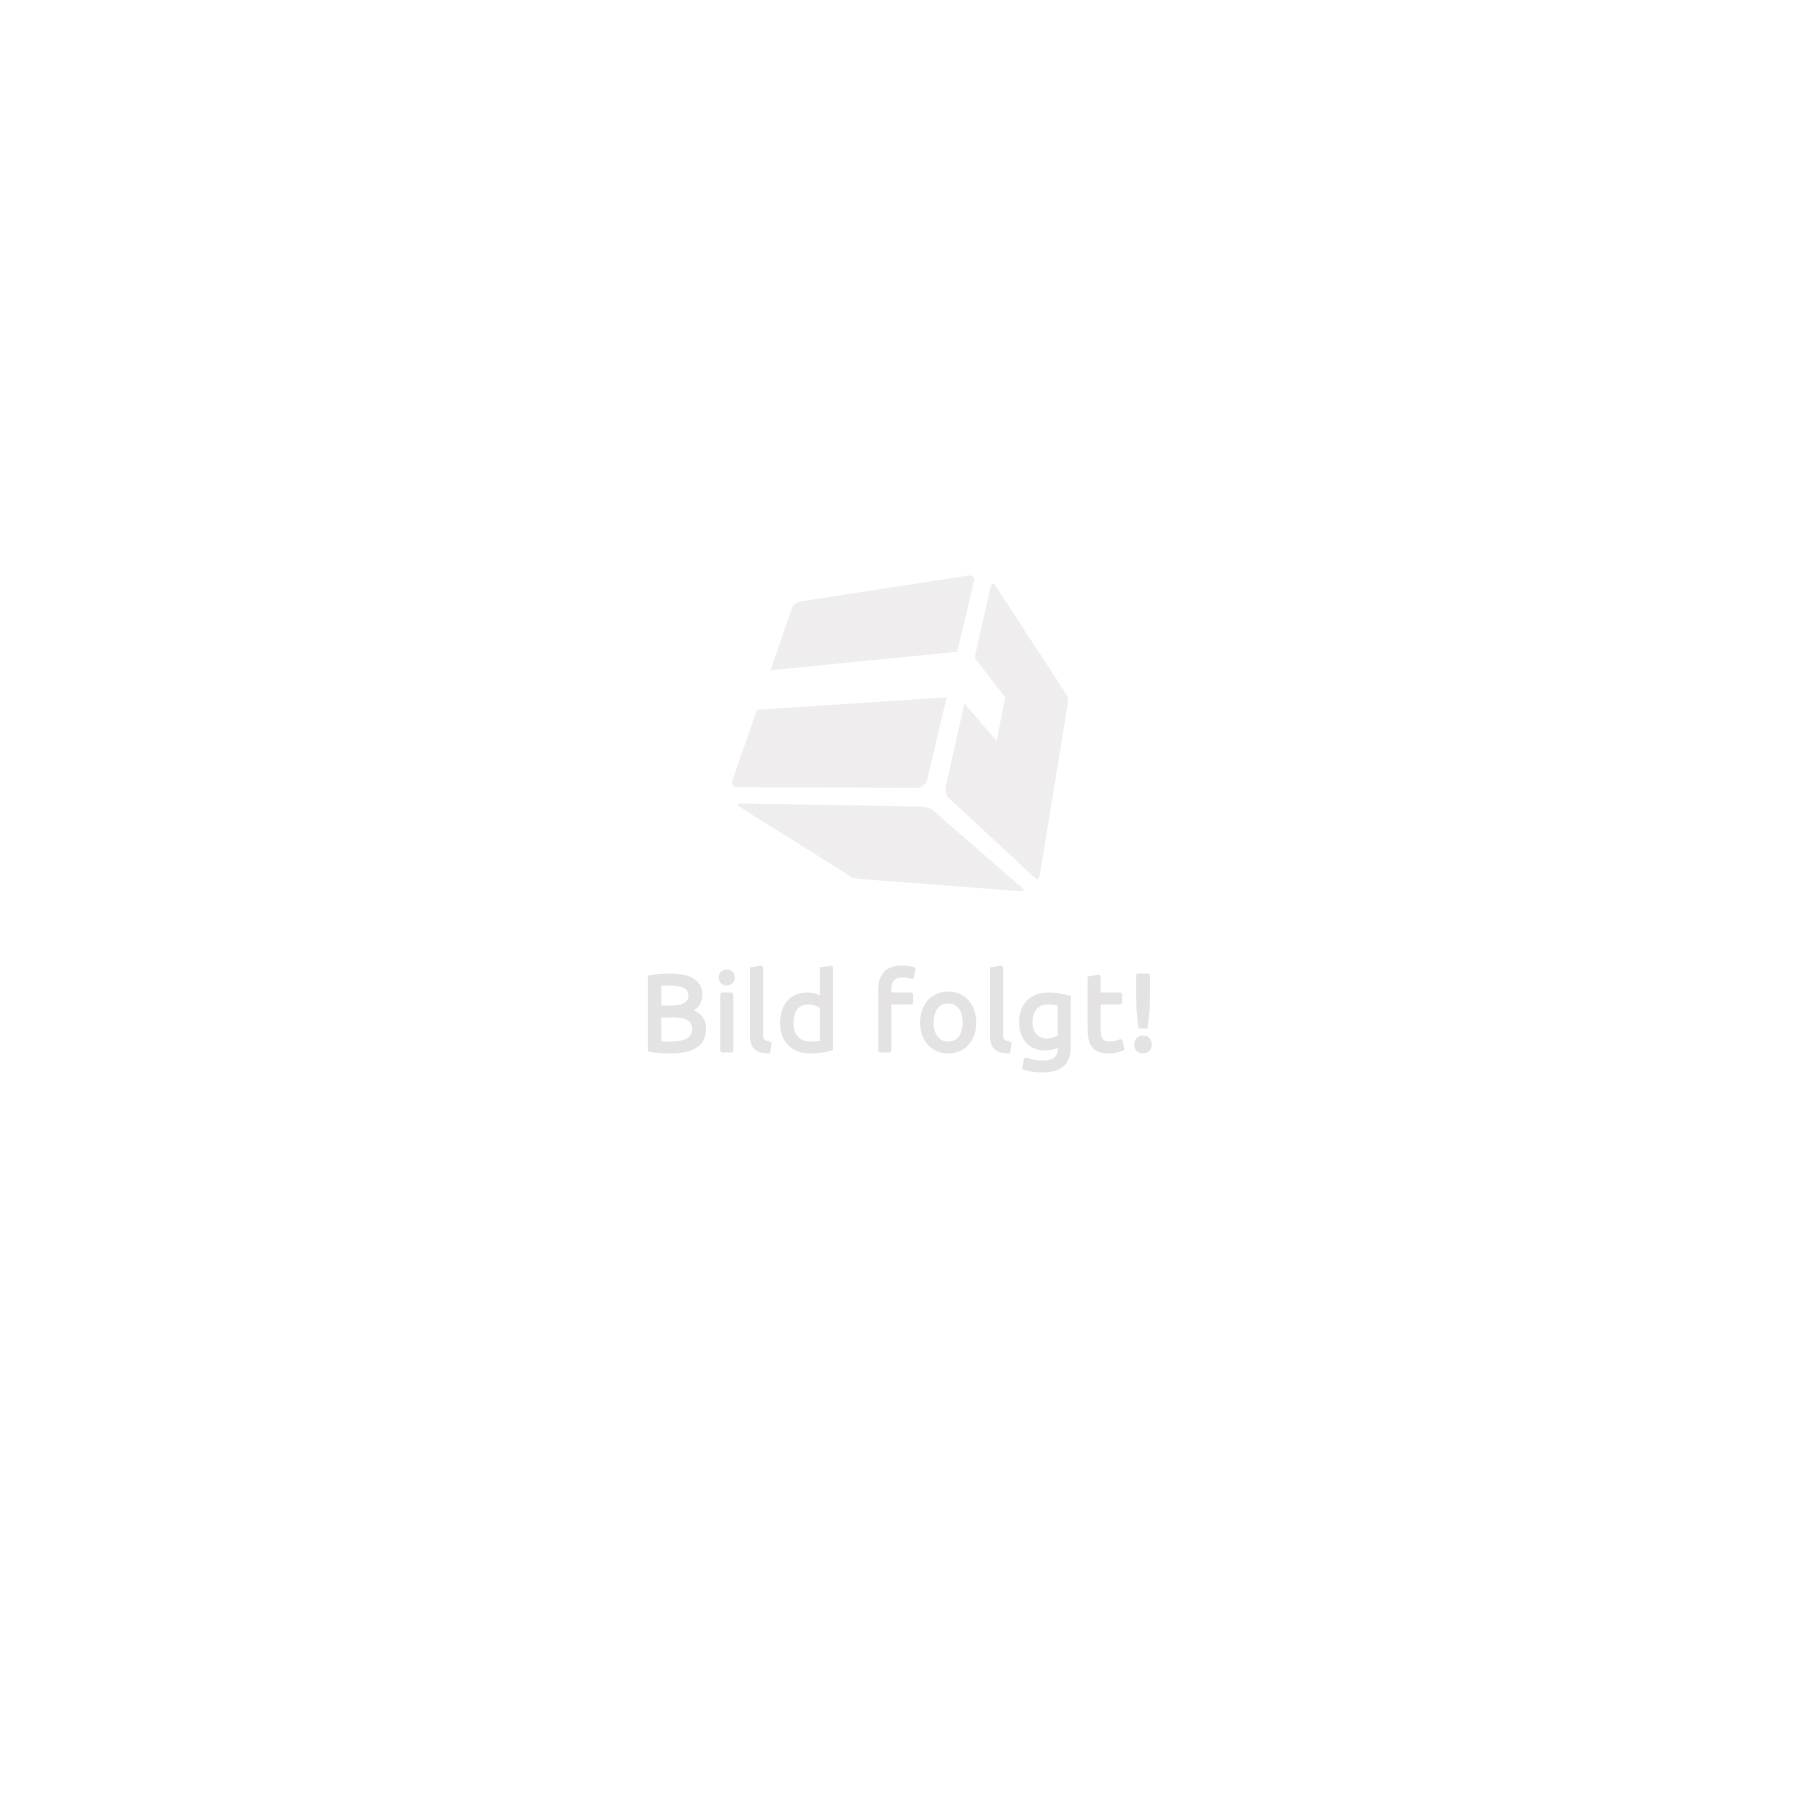 Poly Rattan Garden Furniture Set Dining Wicker 10 Seater Chair Stool Table Mixed Ebay